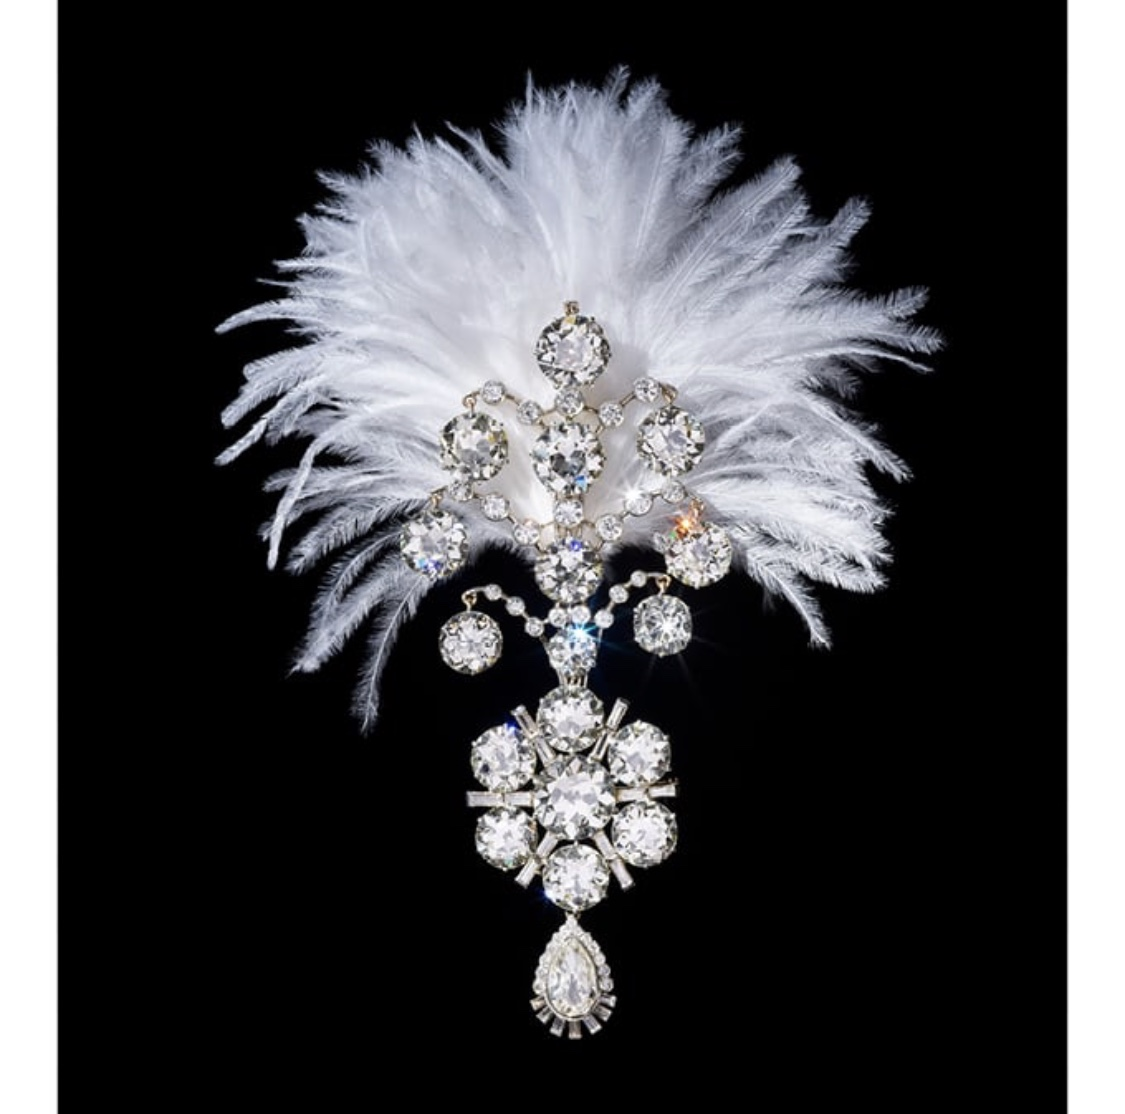 Belle Époque white gold and diamond encrusted Jigha.  Photo source: christies.com